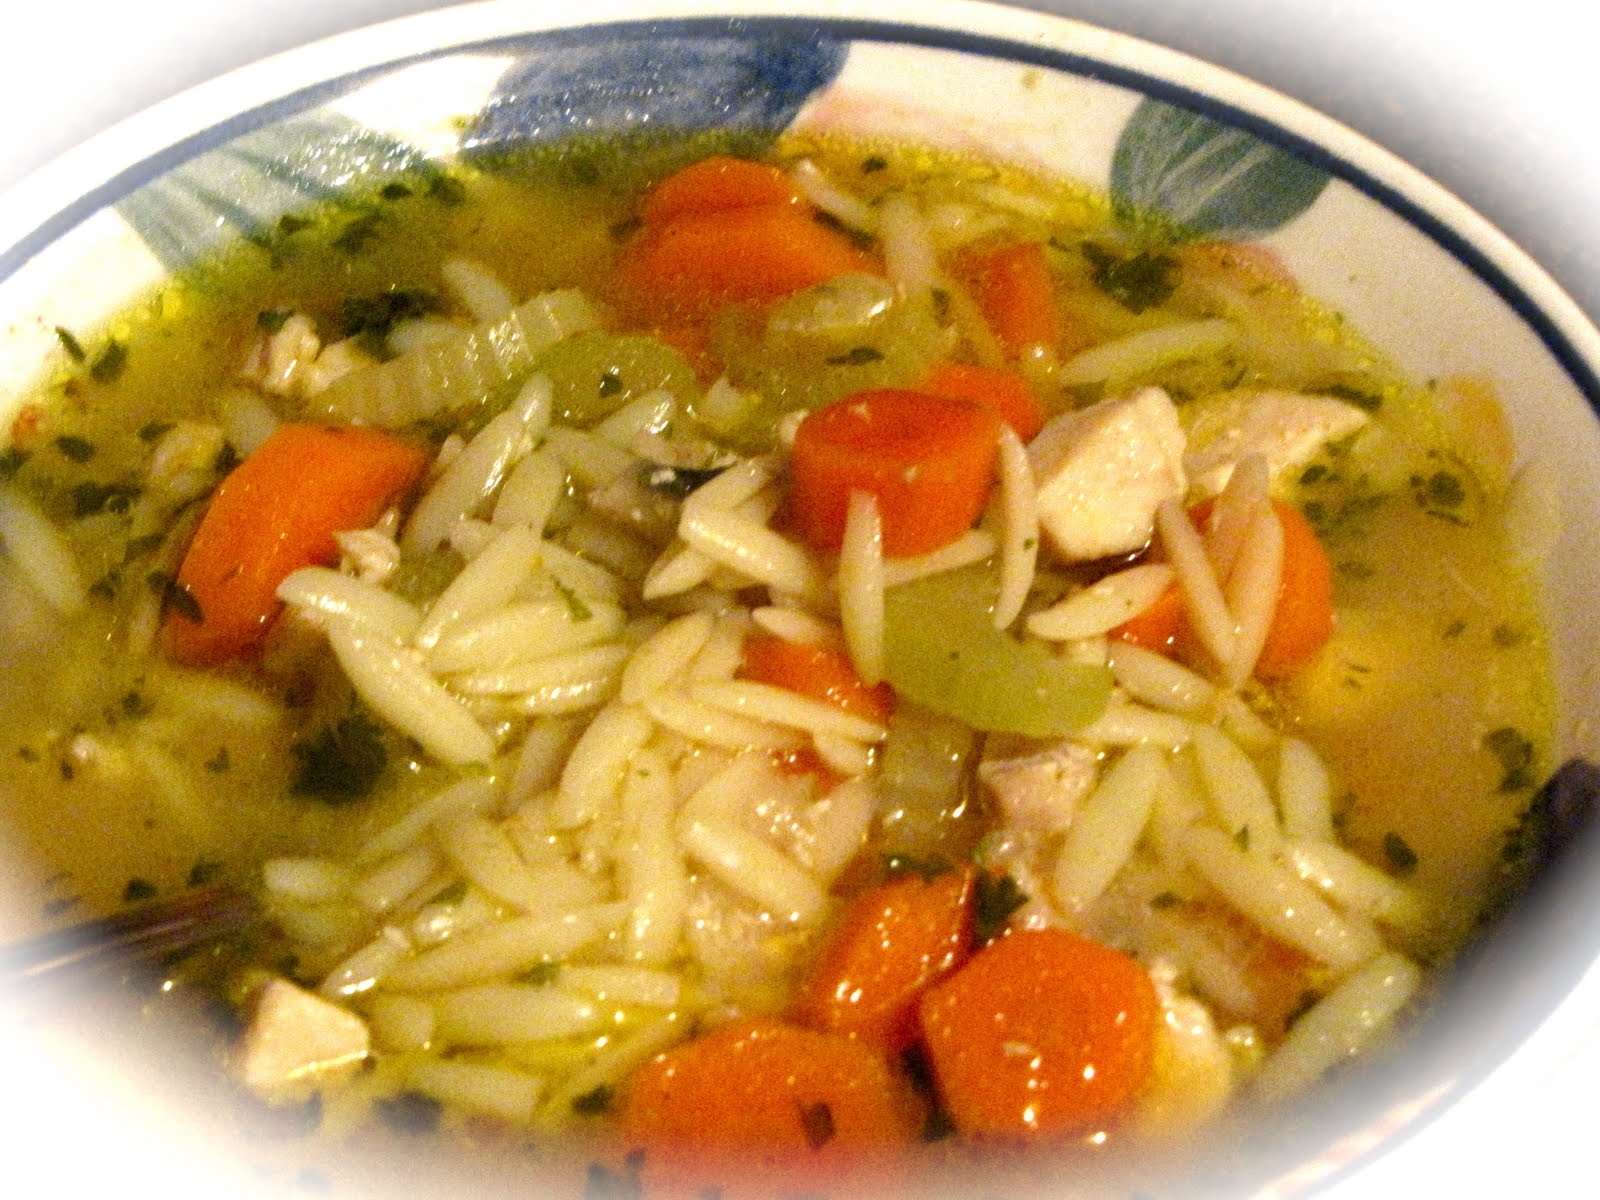 From Jack and Jill's Kitchen: Orzo Chicken Noodle Soup